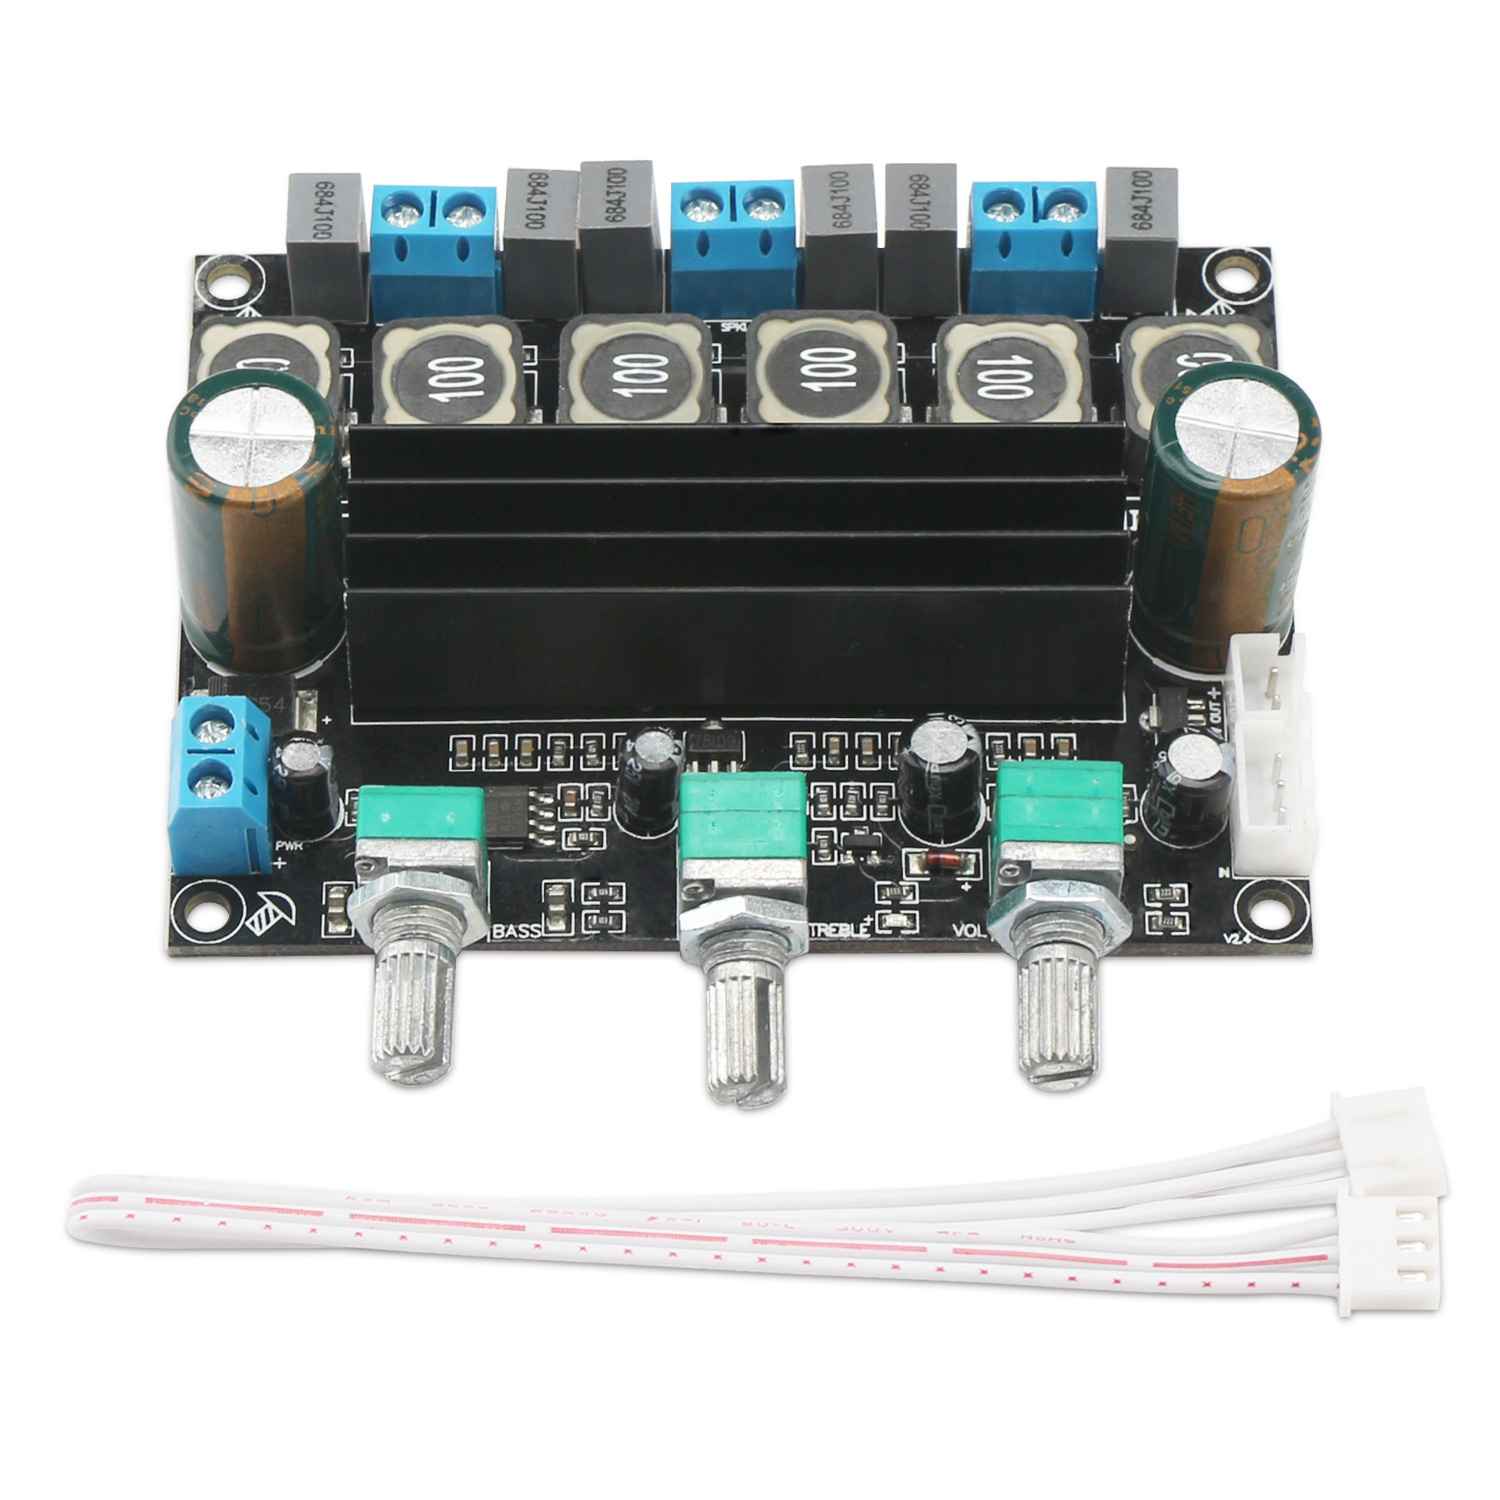 Tpa3116d2 Subwoofer Amplifier Board Dc1025v Stereo Audio 21 Channel Super Bass Finished